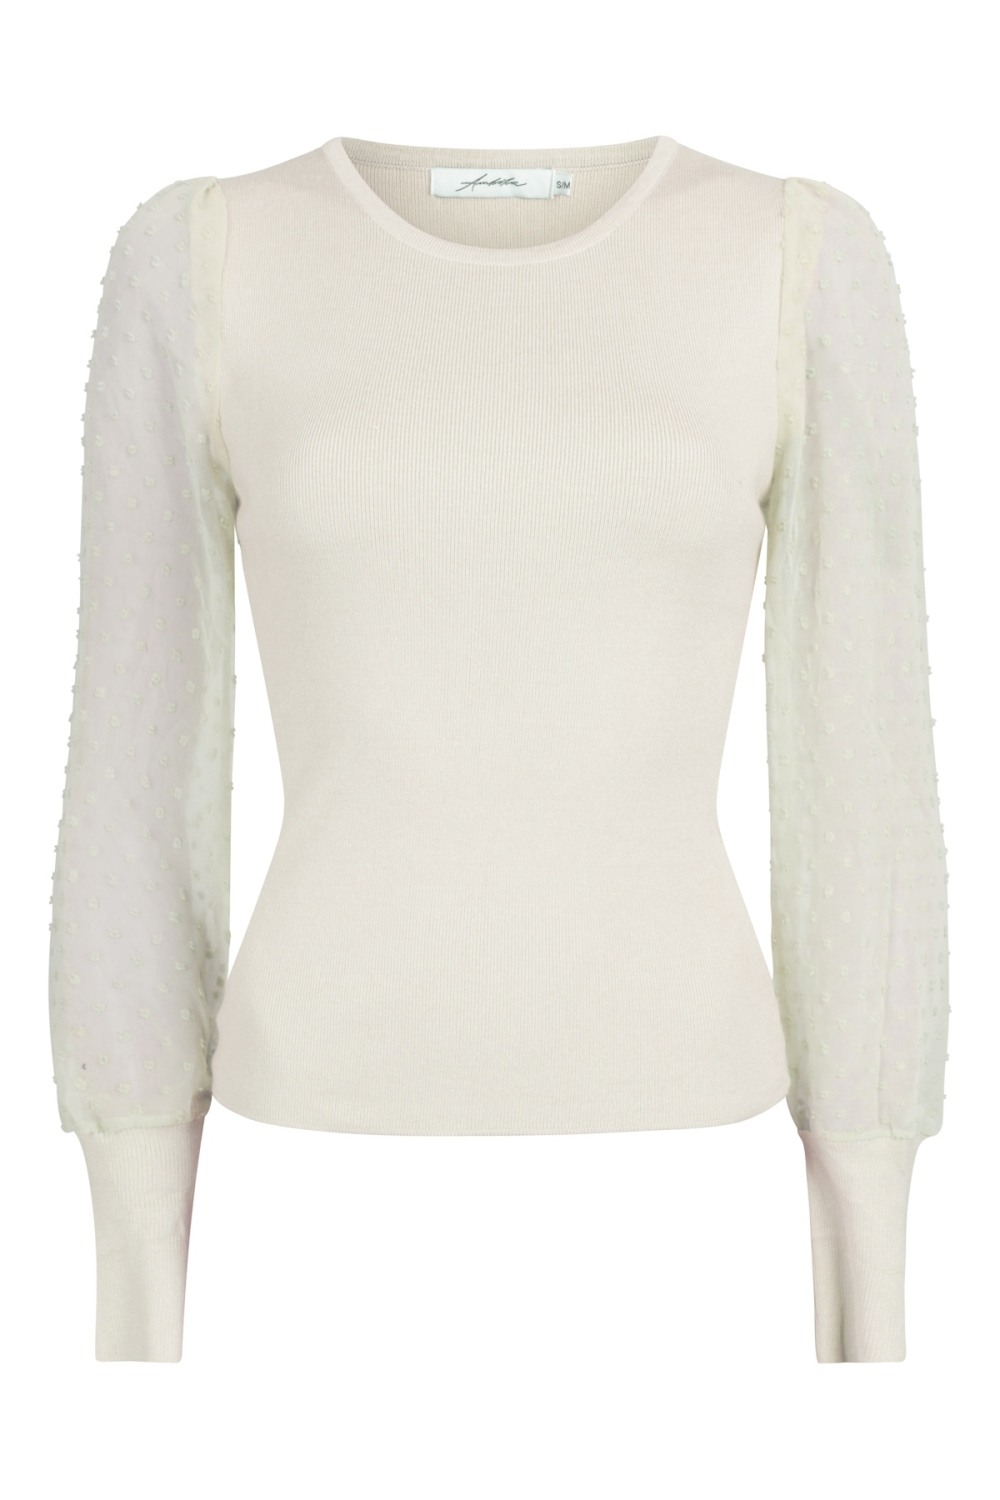 INVITO Blouse Beige M12292-1